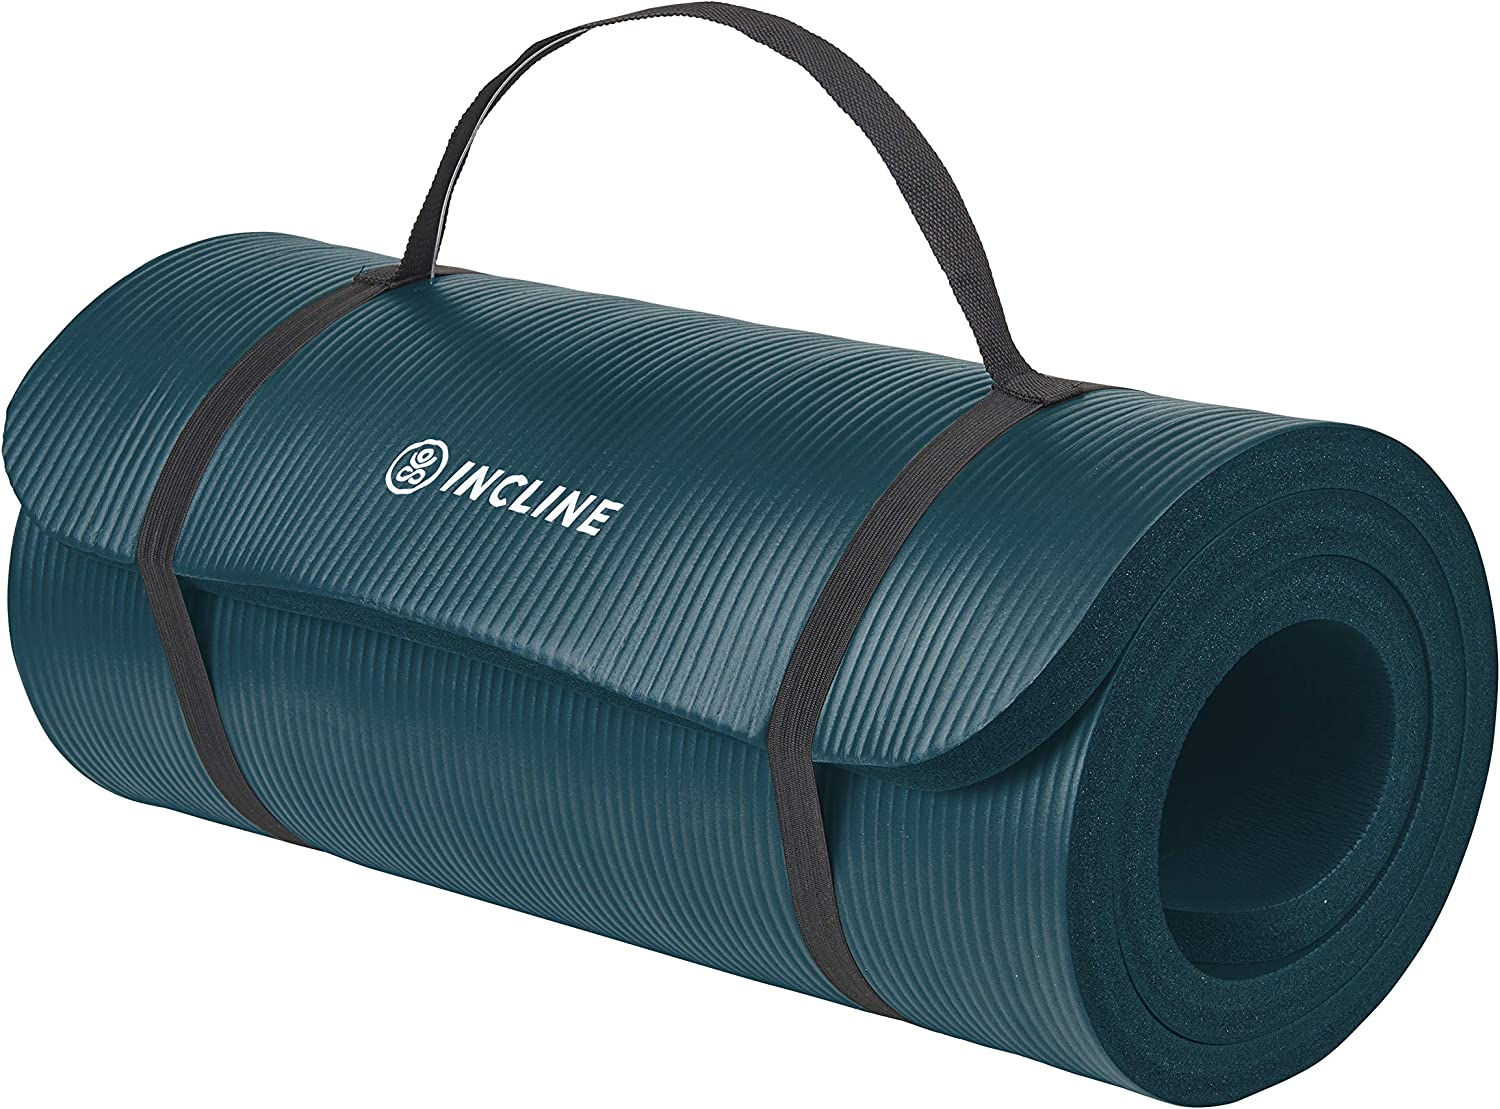 Incline Fit Exercise Mat Ananda 1 Extra Thick Exercise Mat with Strap – Non Slip Workout Mat for Yoga, Pilates, Stretching, Meditation, Floor Fitness Exercises